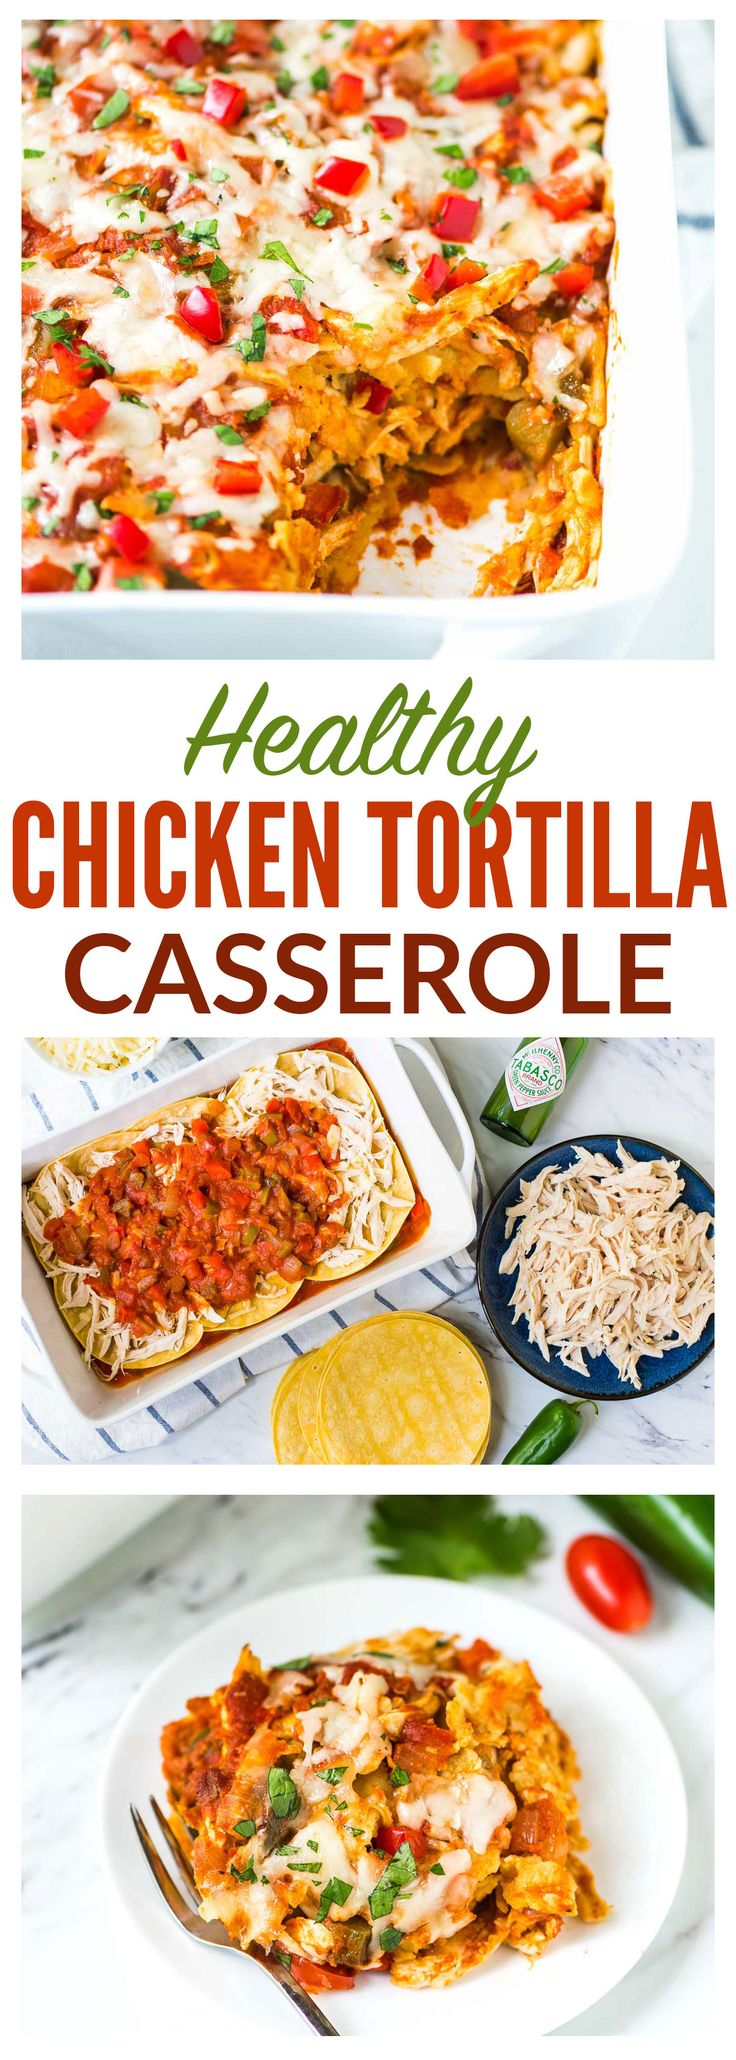 Easy Mexican Chicken Tortilla Casserole. Family favorite! Layers of cheese, chicken, and tortillas, baked in a southwest tomato sauce. Freezer-friendly and healthy! @wellplated